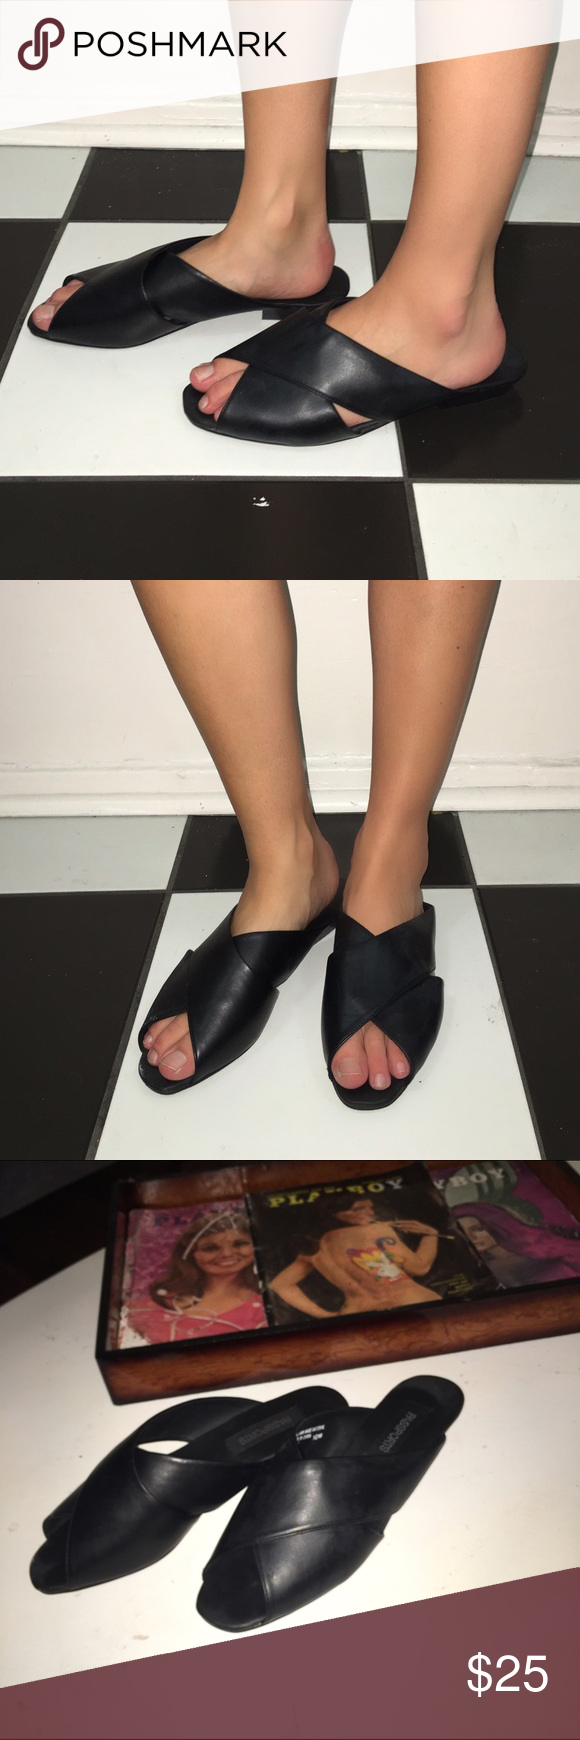 Black chic sandals 👠 Only worn once. In great condition! Vegan leather sliders by passport. Vintage dead stock. Size 10! Runs small best for a 9 / 9.5 super comfy shoe and could easily be dressed up Vintage Shoes Sandals